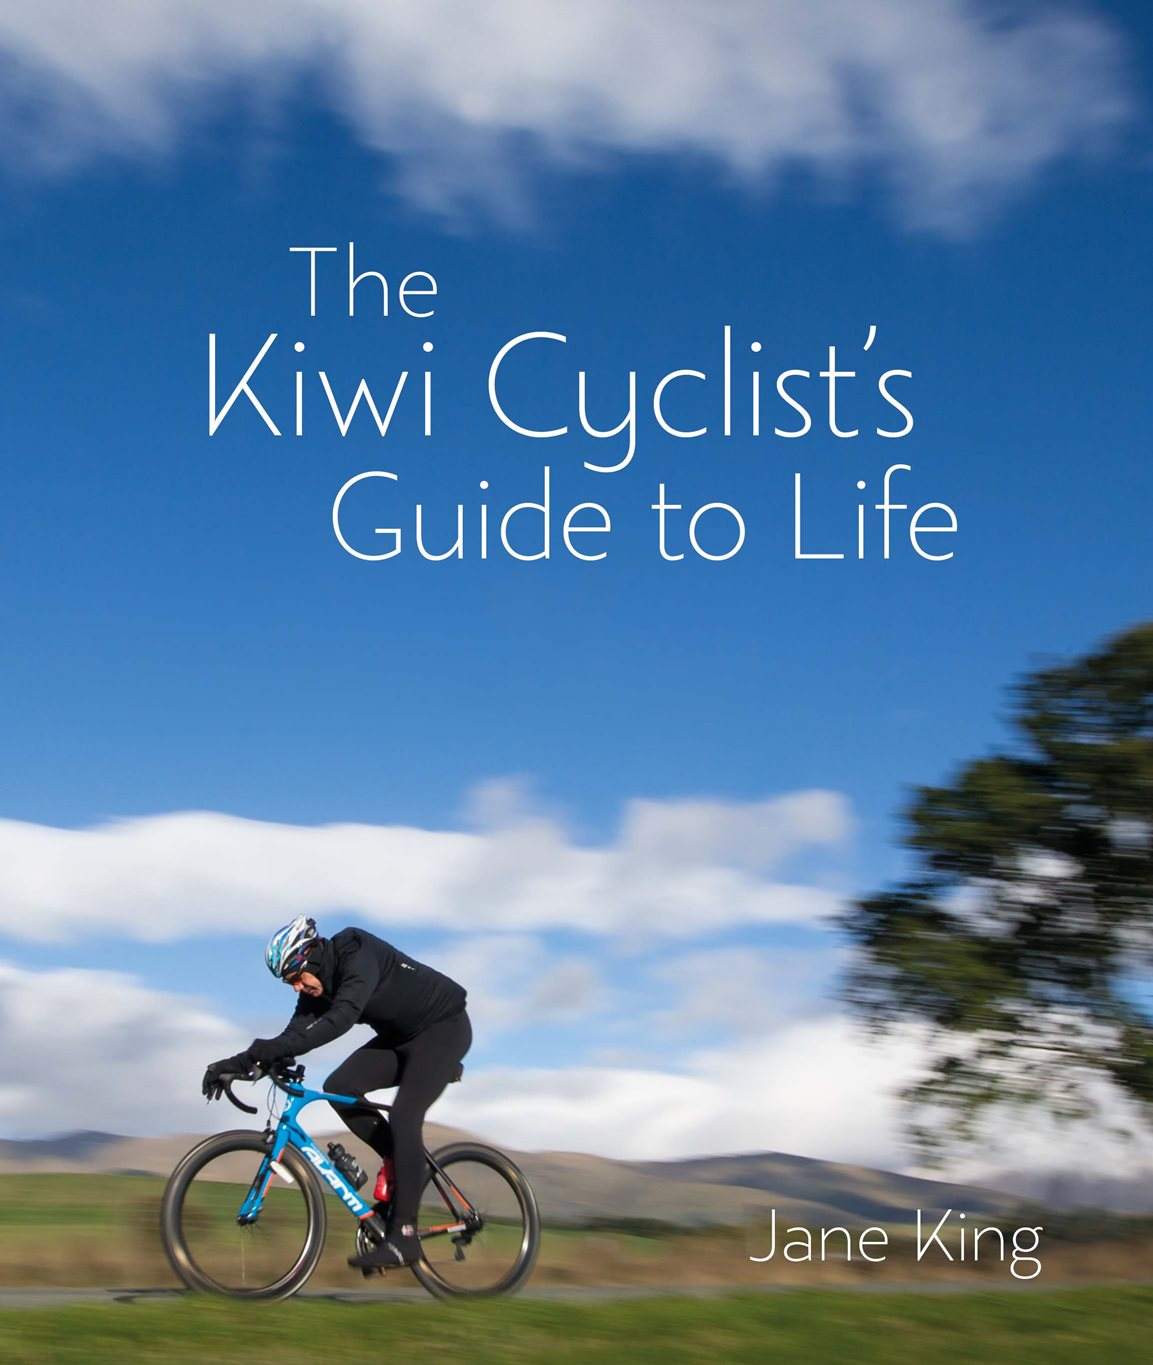 Book Review: The Kiwi Cyclist's Guide to Life